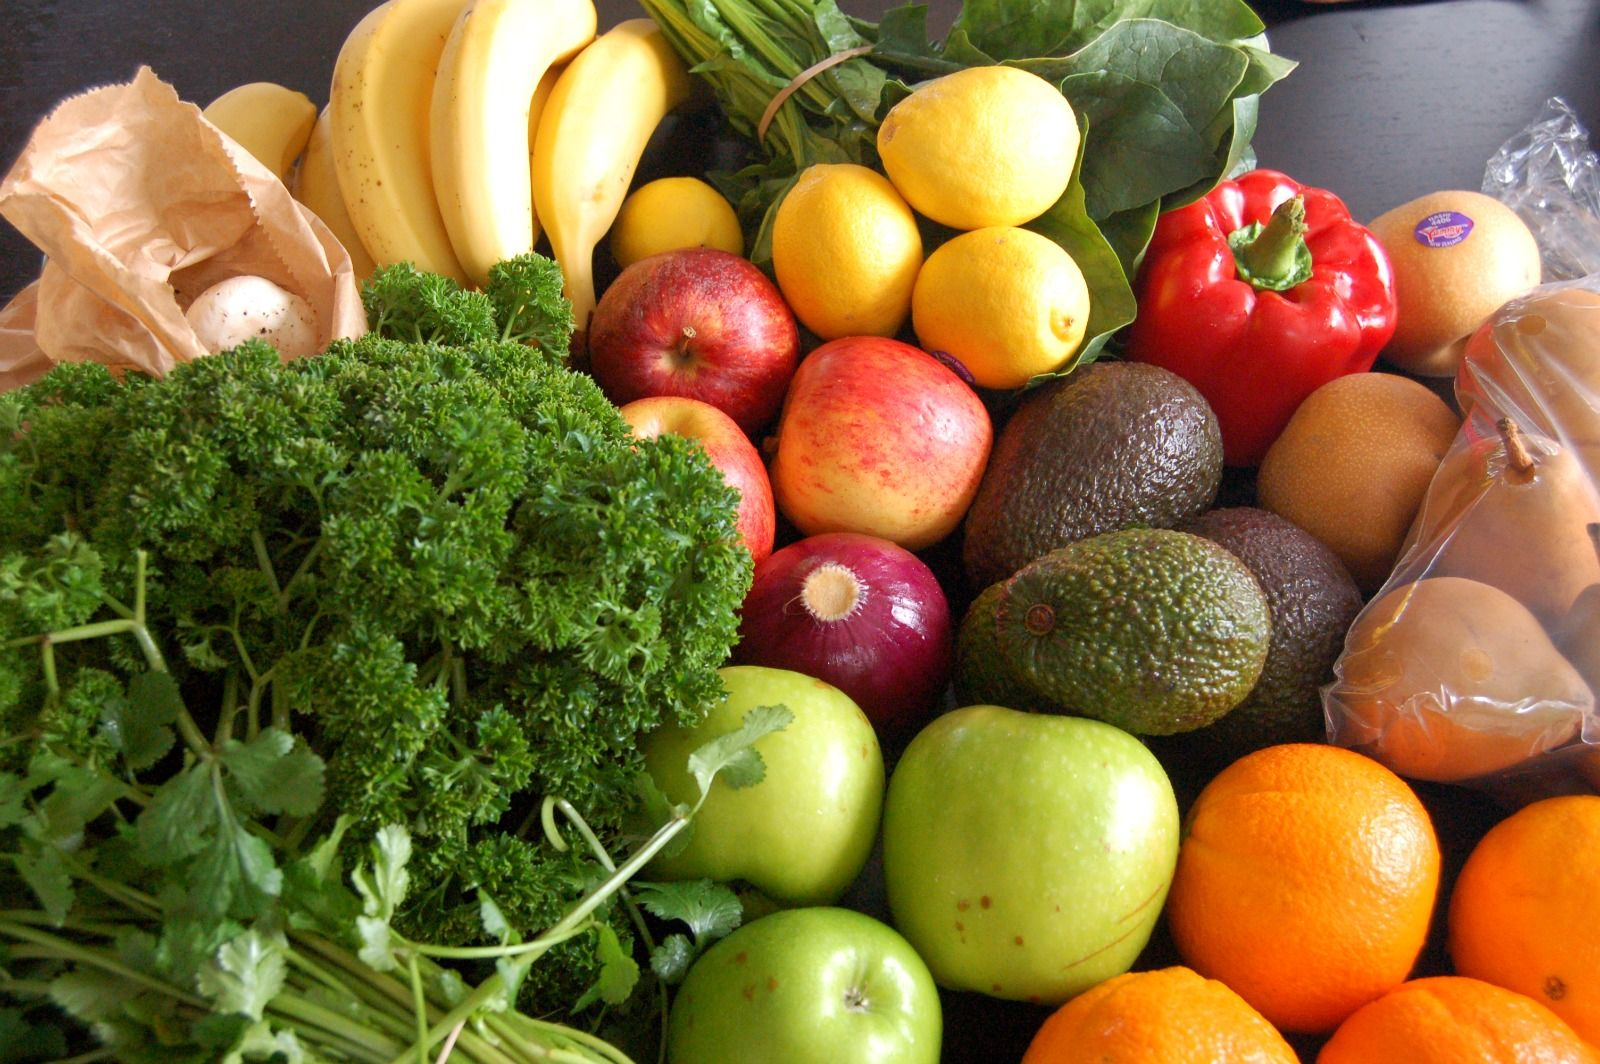 12 fruits and vegetables you should always buy organic